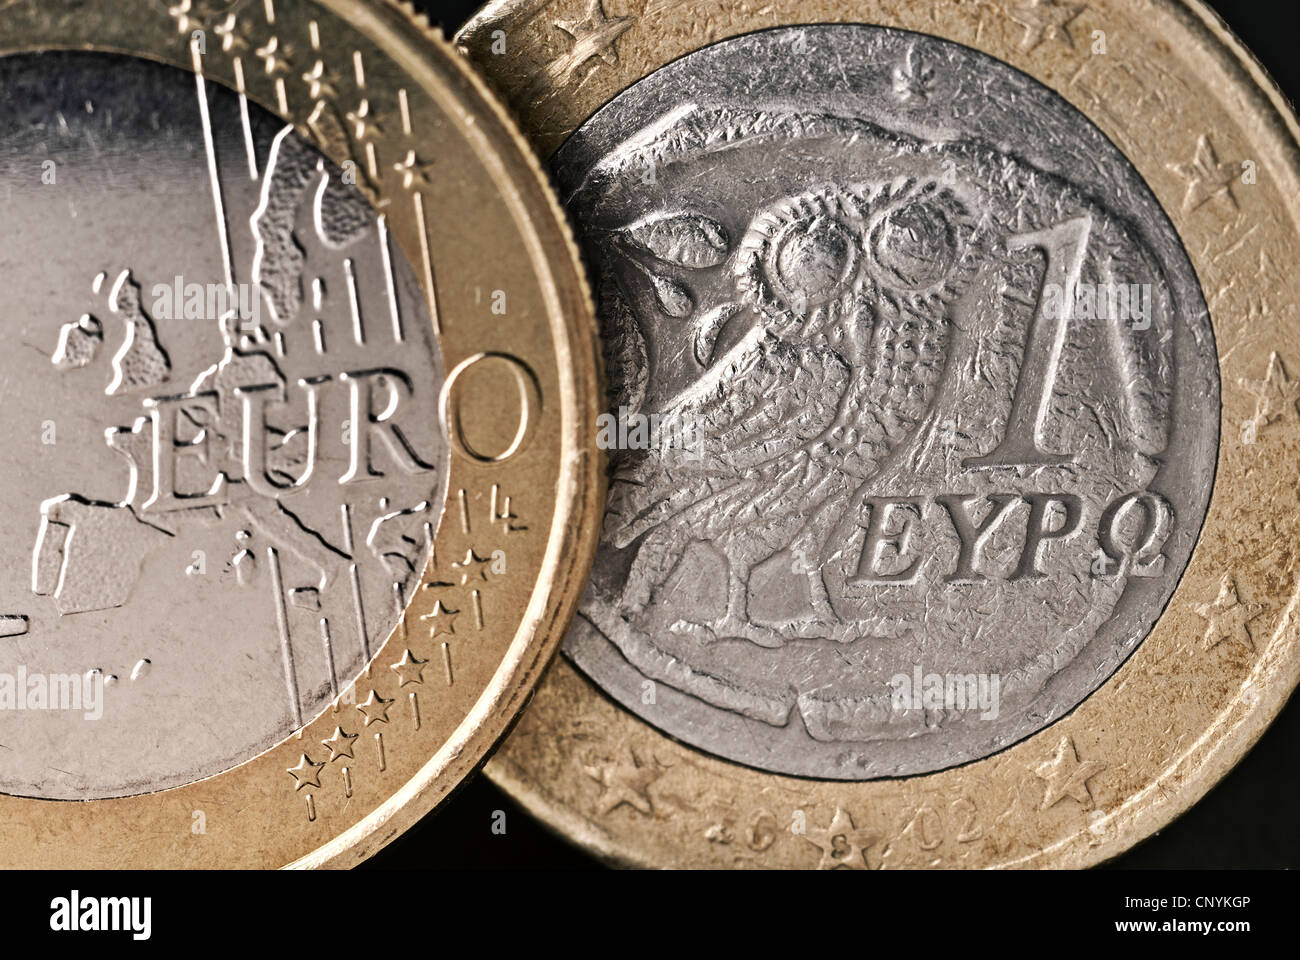 Front and back of a Greek € coin in close up. - Stock Image